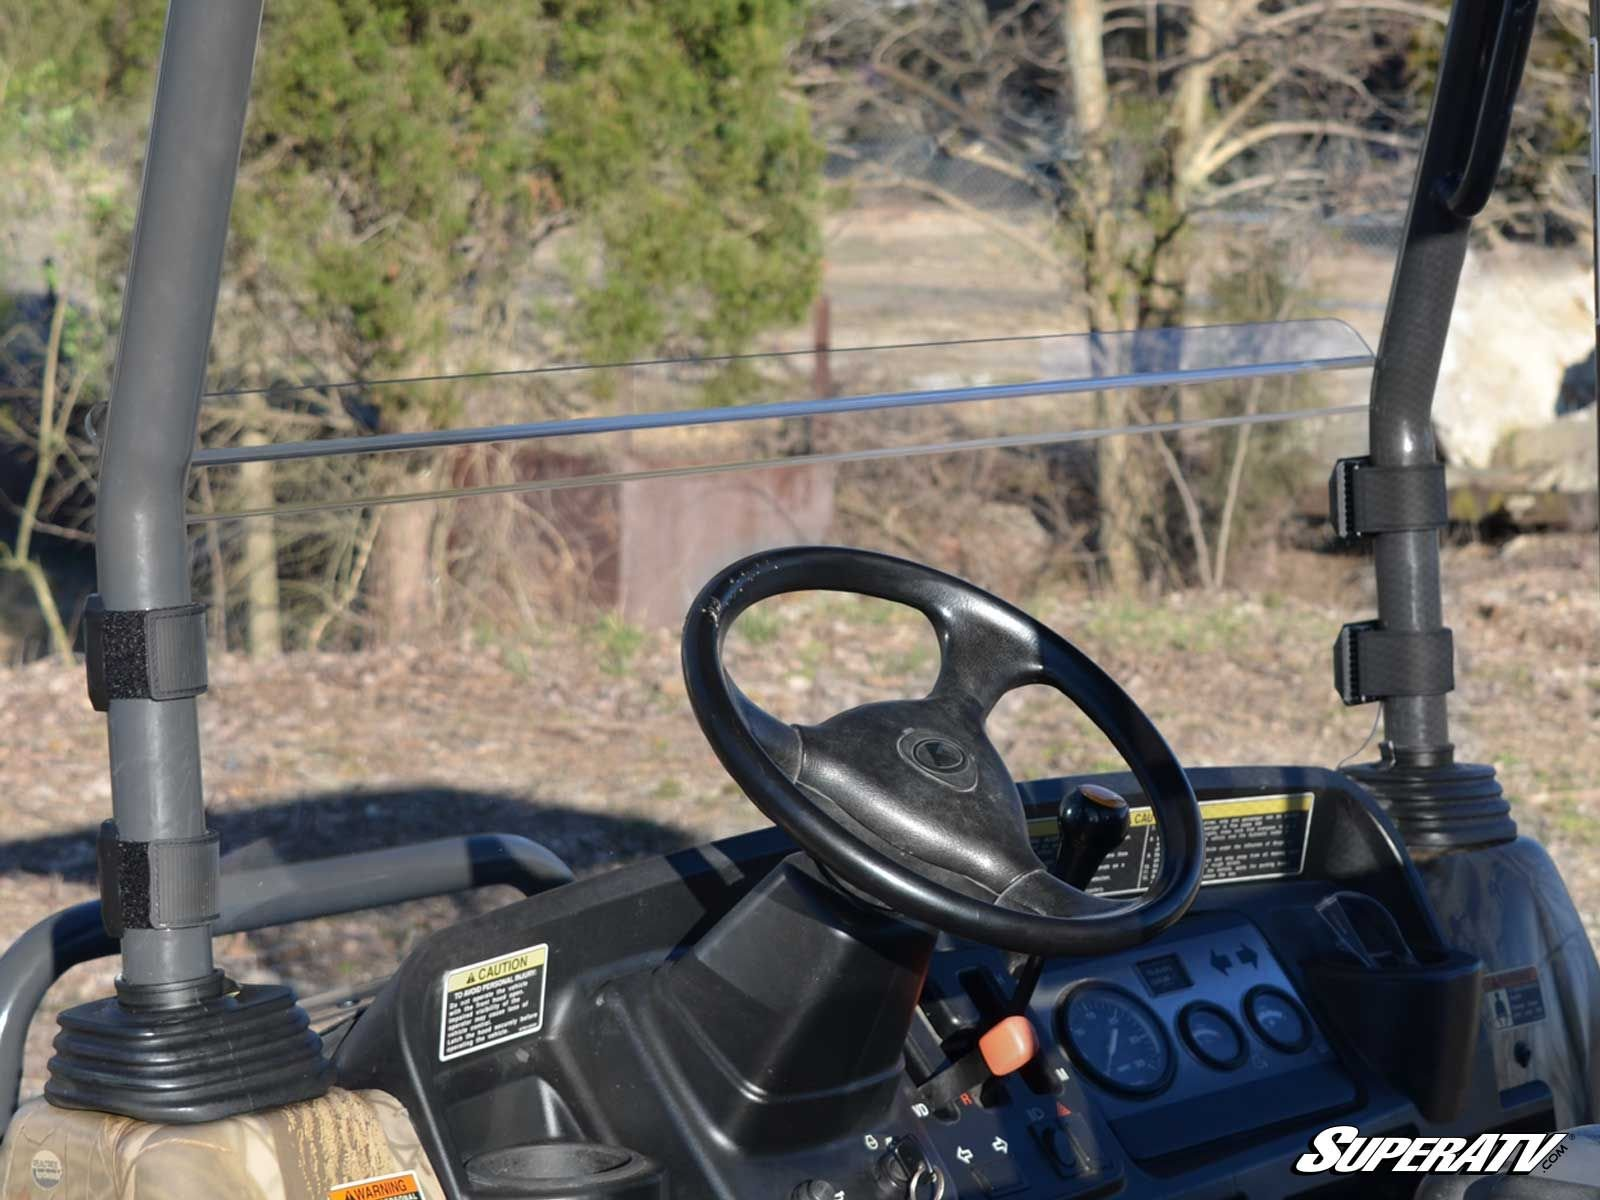 MADE IN THE USA! SuperATV Kubota RTV 900 Scratch Resistant Half Windshield and Free Unhinged ATV Hat! by Super ATV (Image #4)